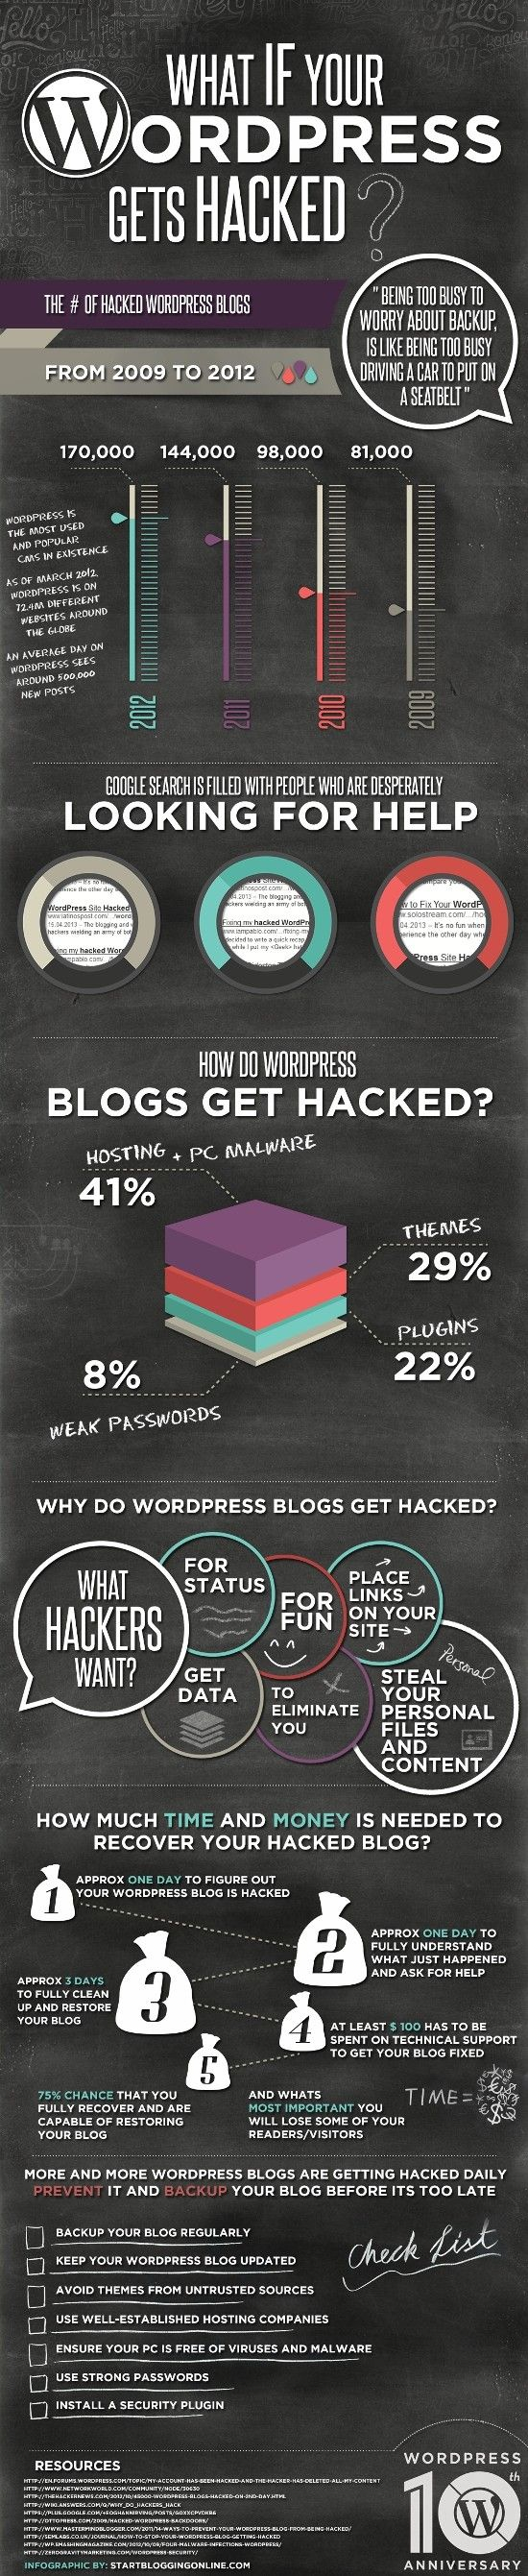 hacked wordpress what to do